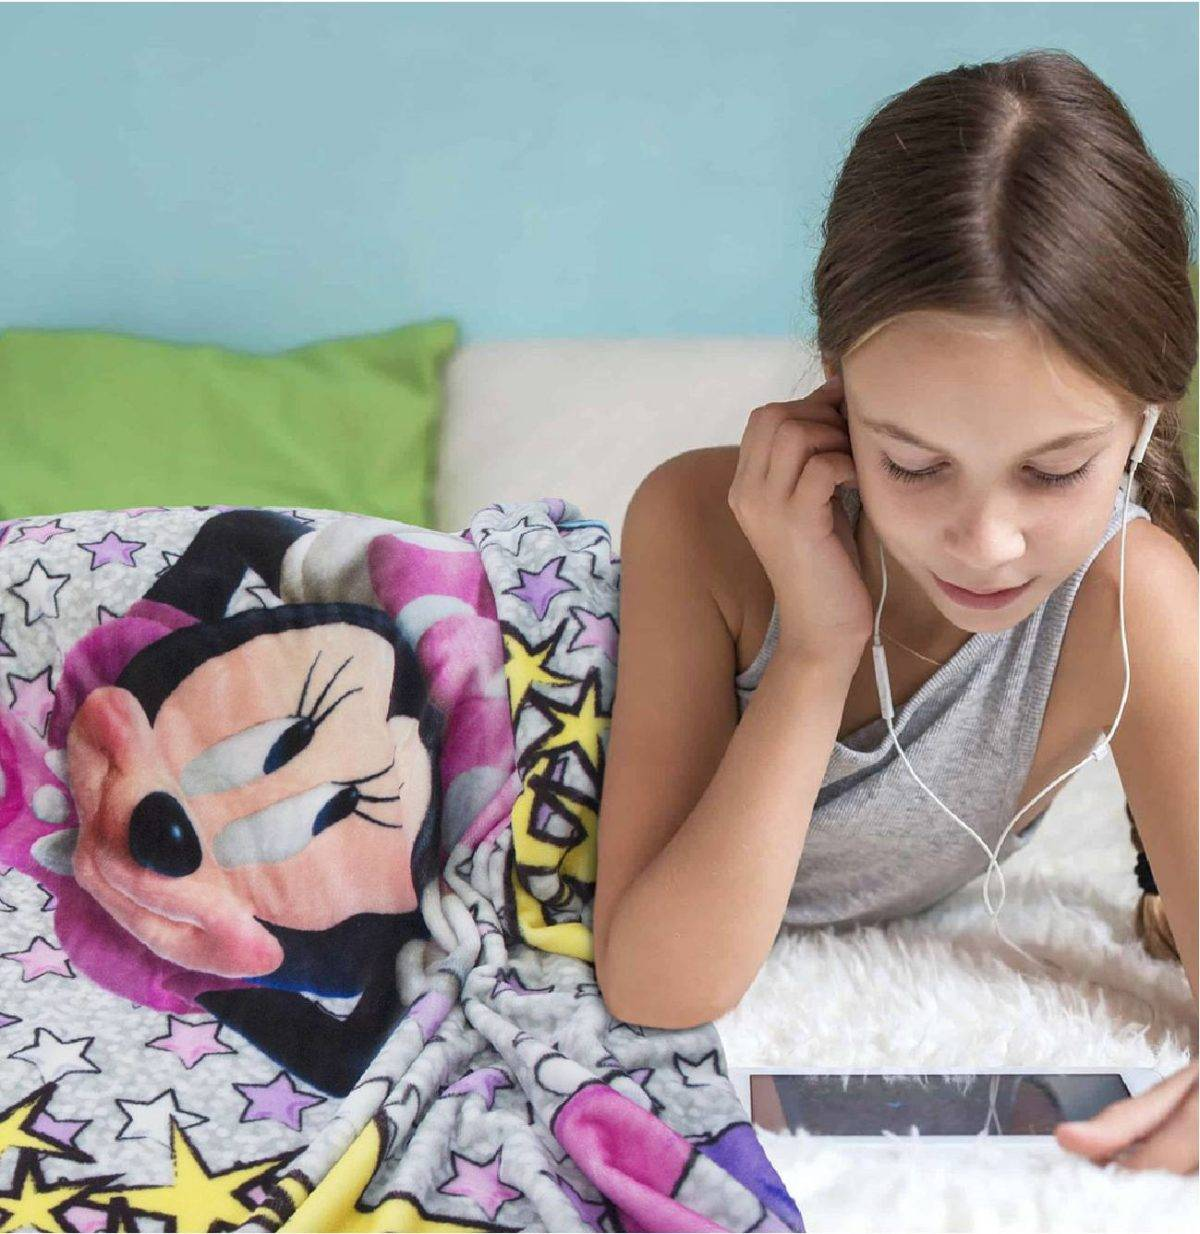 Girl with headphones under Minnie mouse duvet cover